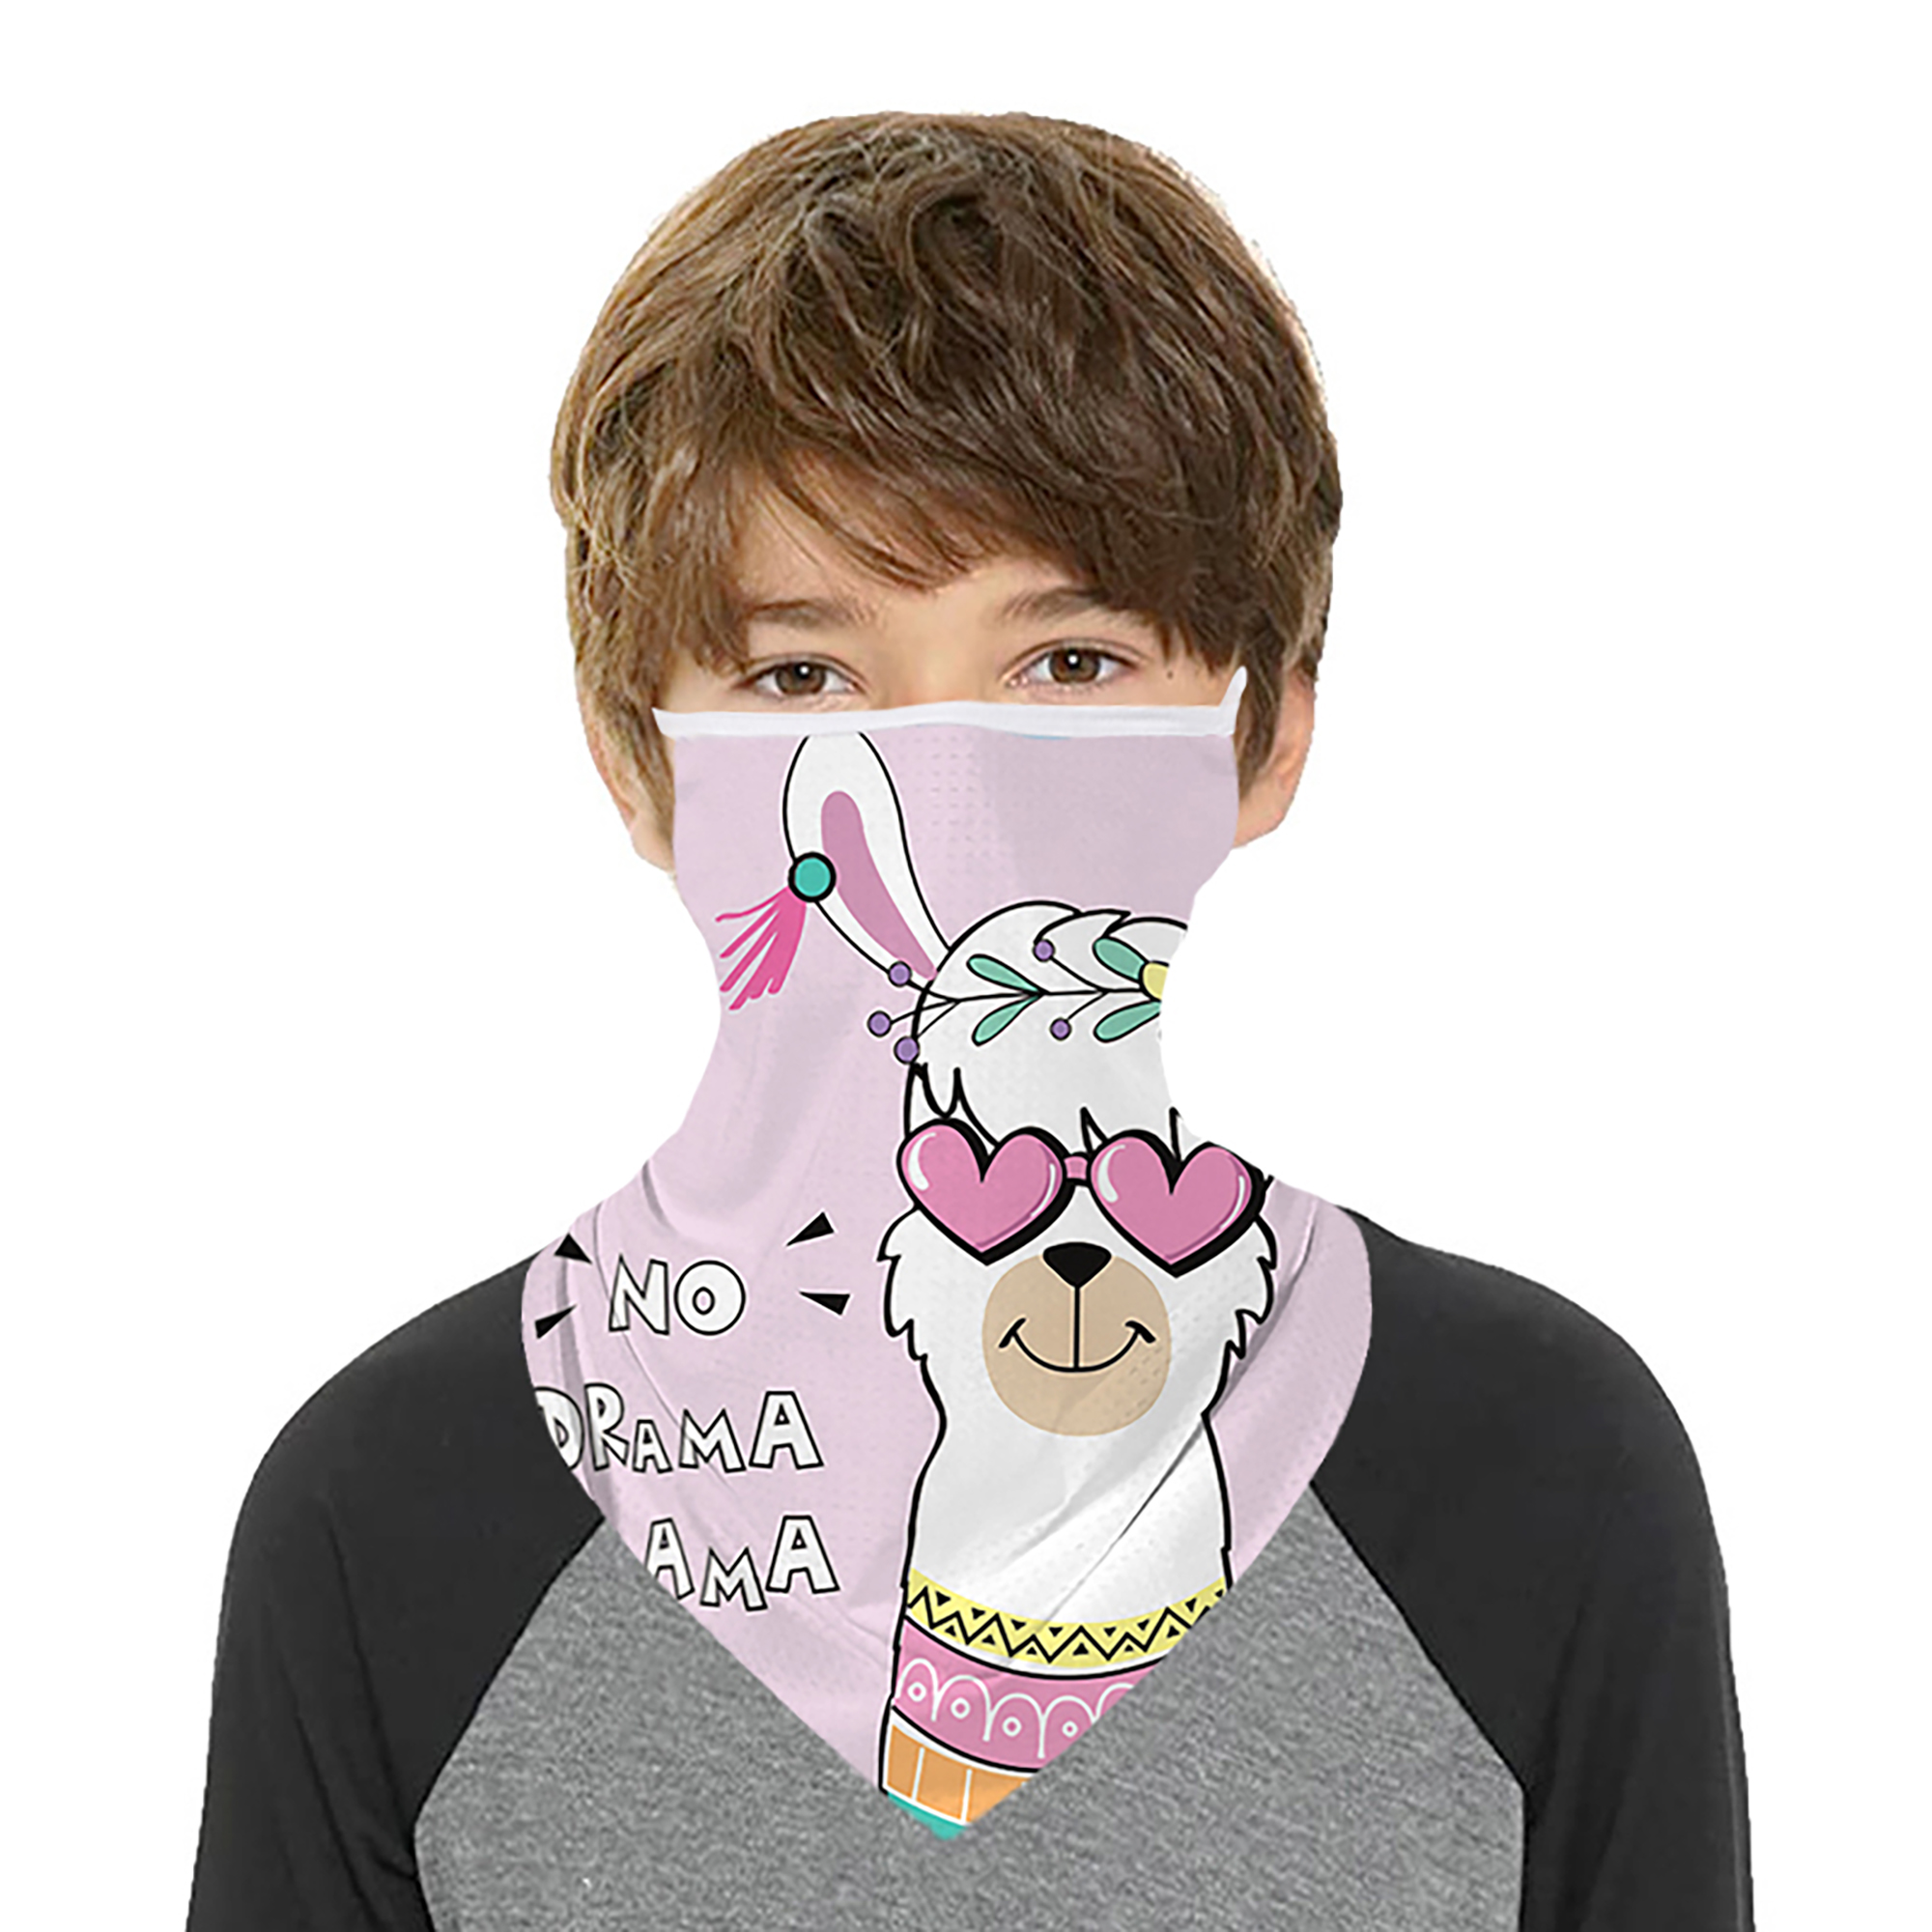 Details about  /Neck Tube Scarf Bandana Head Face Cover Neck Gaiter Ear Loops Headwear Tools